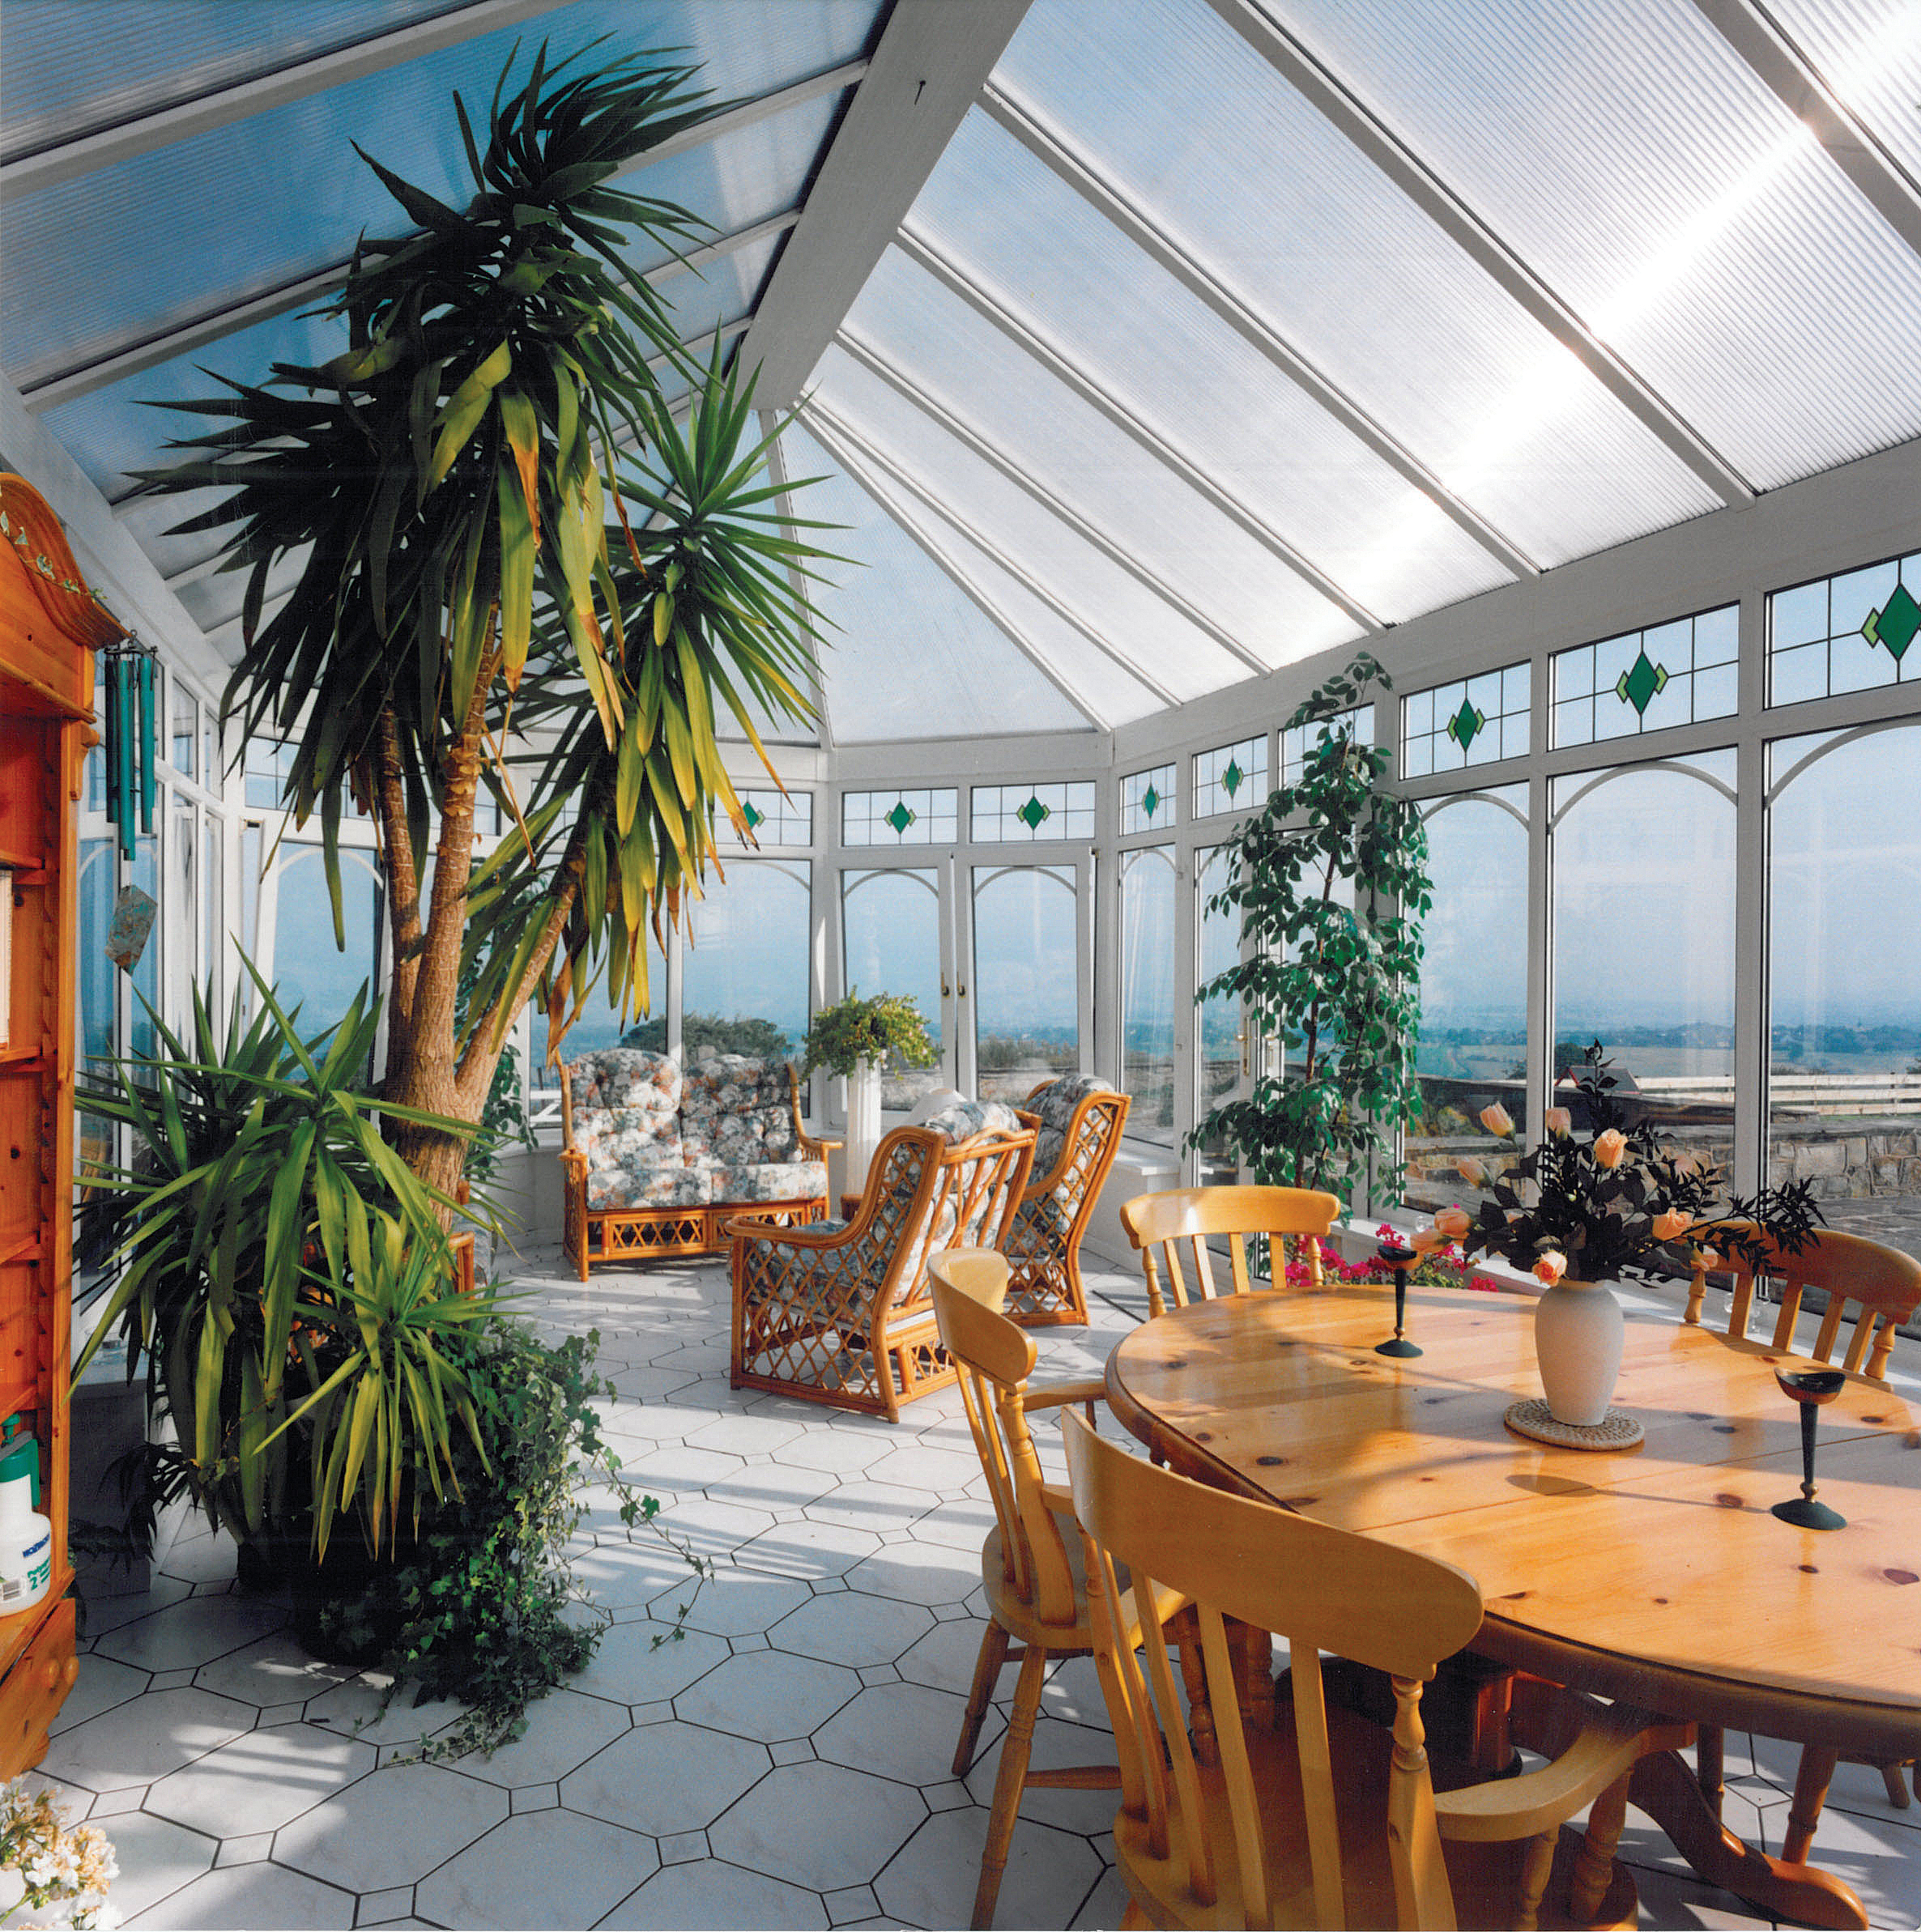 Conservatory glass for year round comfort